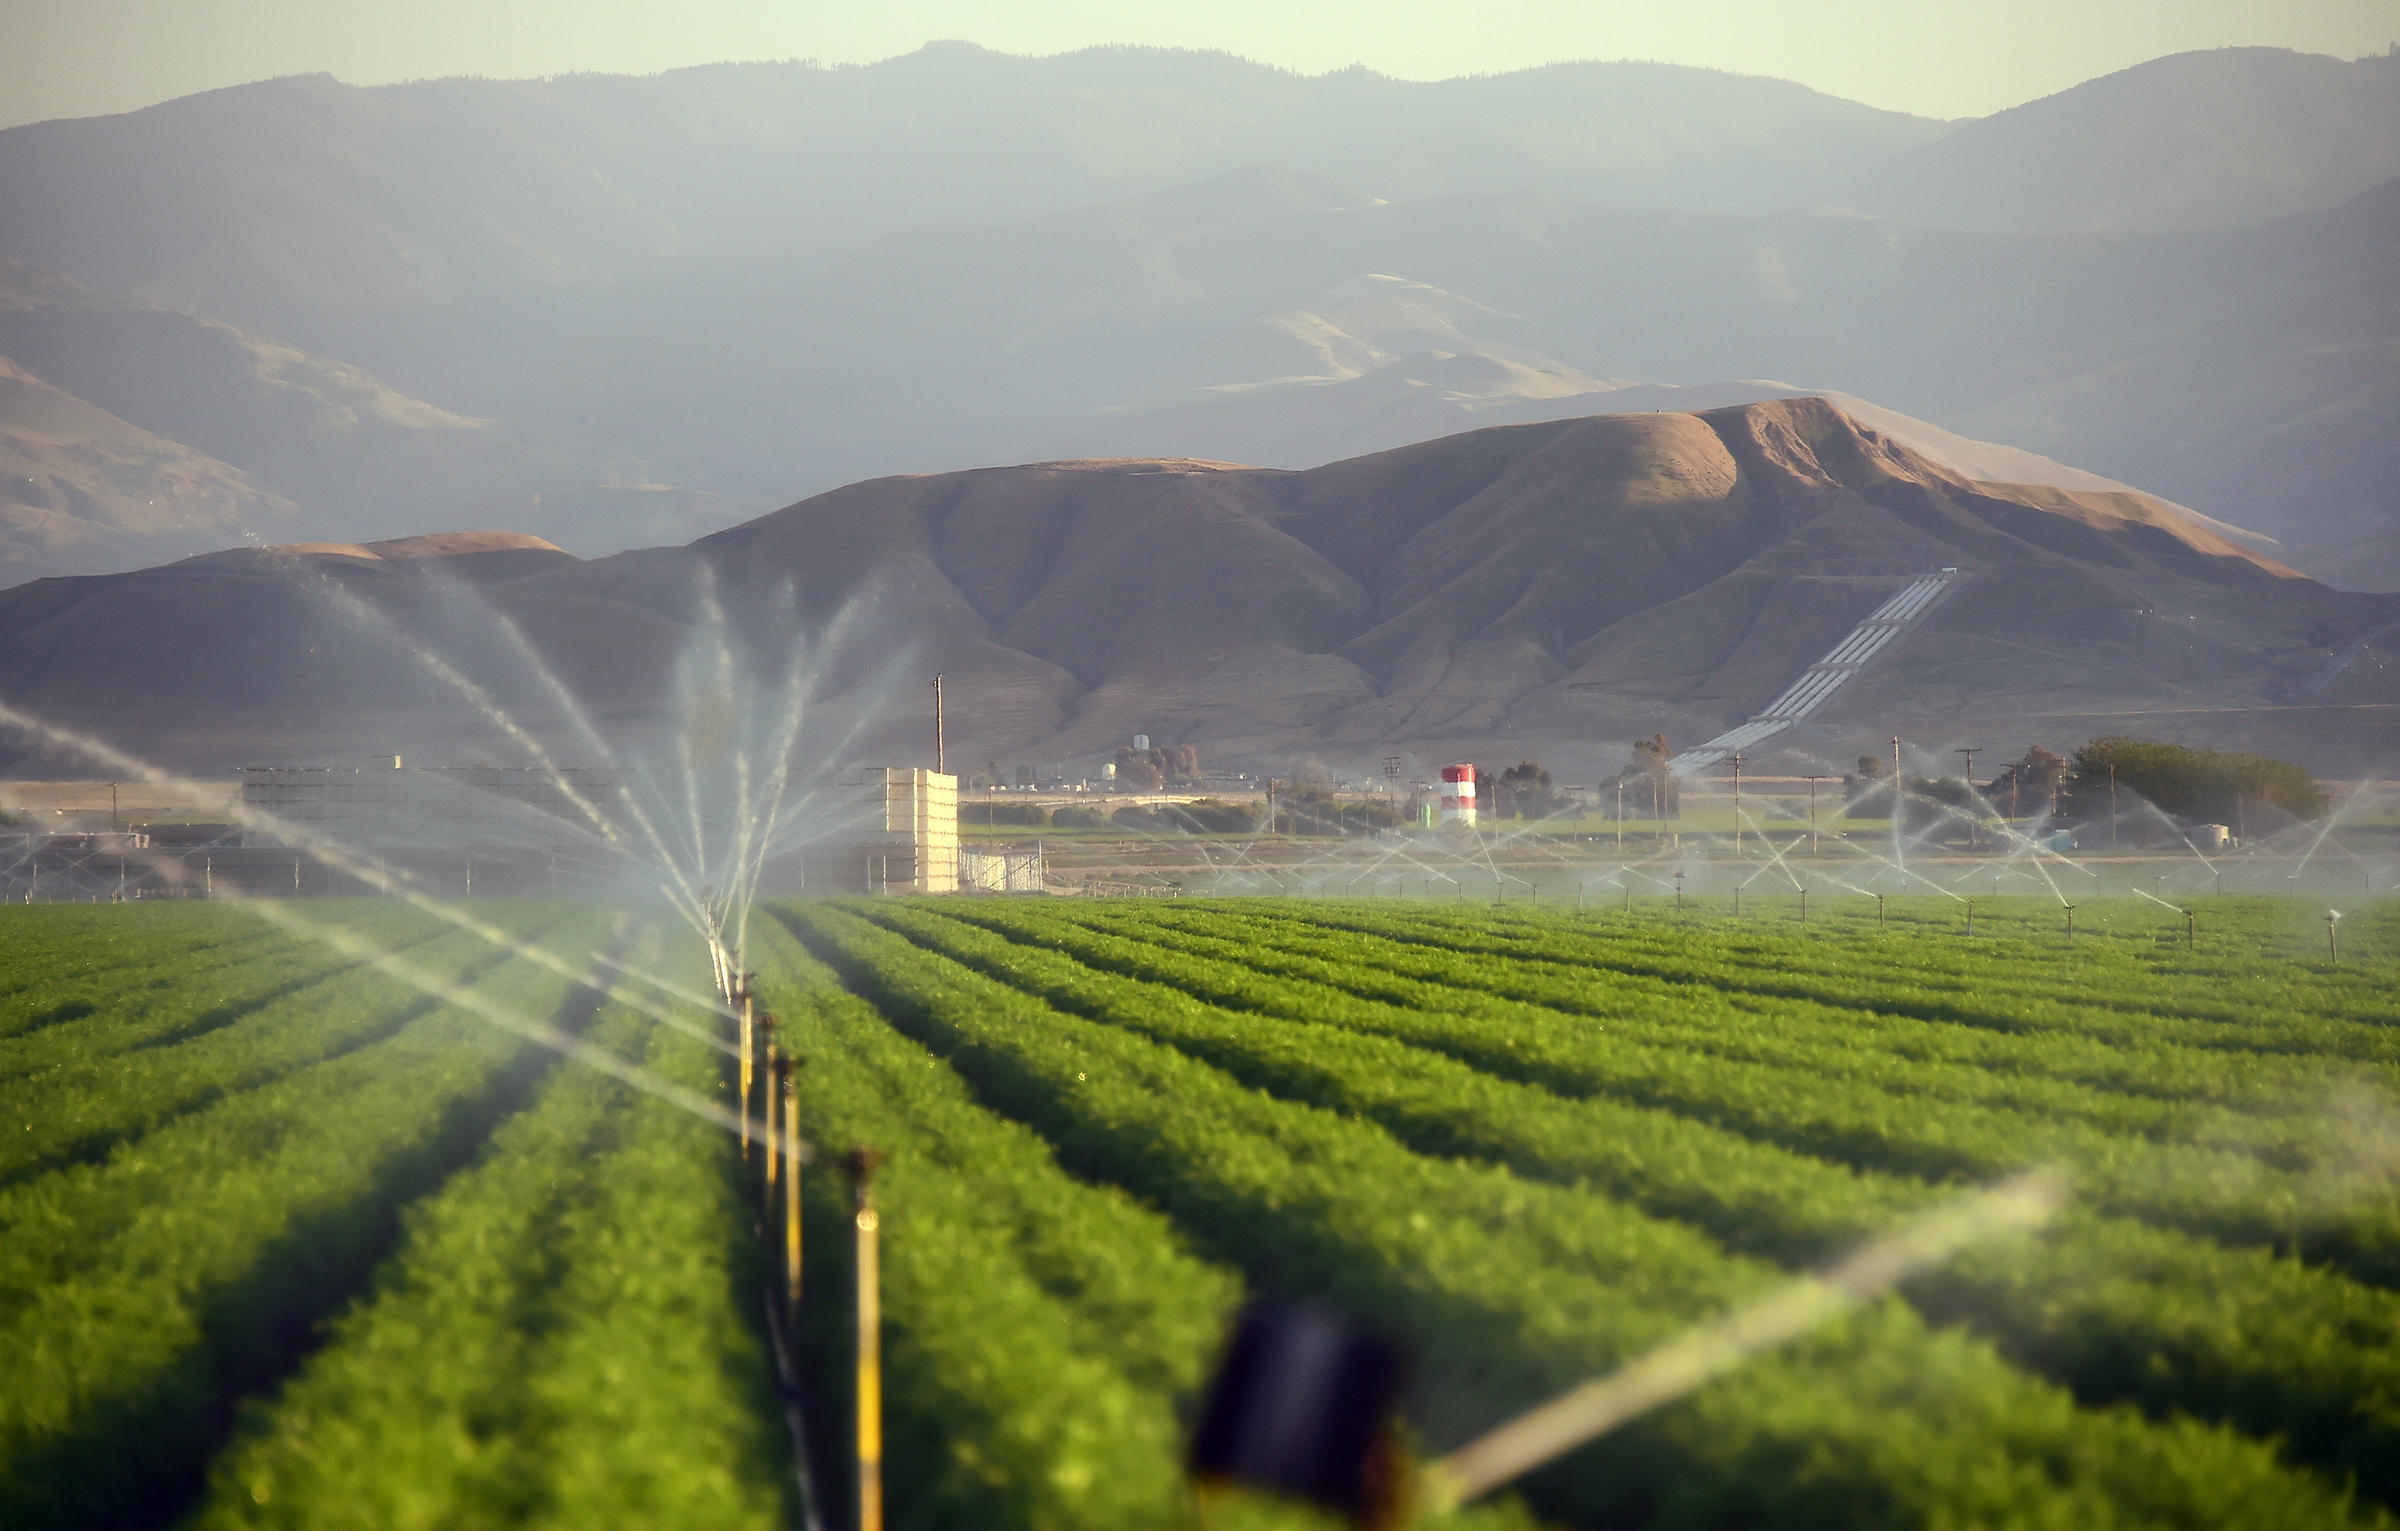 Irrigation in the San Joaquin Valley uses much of California's groundwater. Photo: KUOW